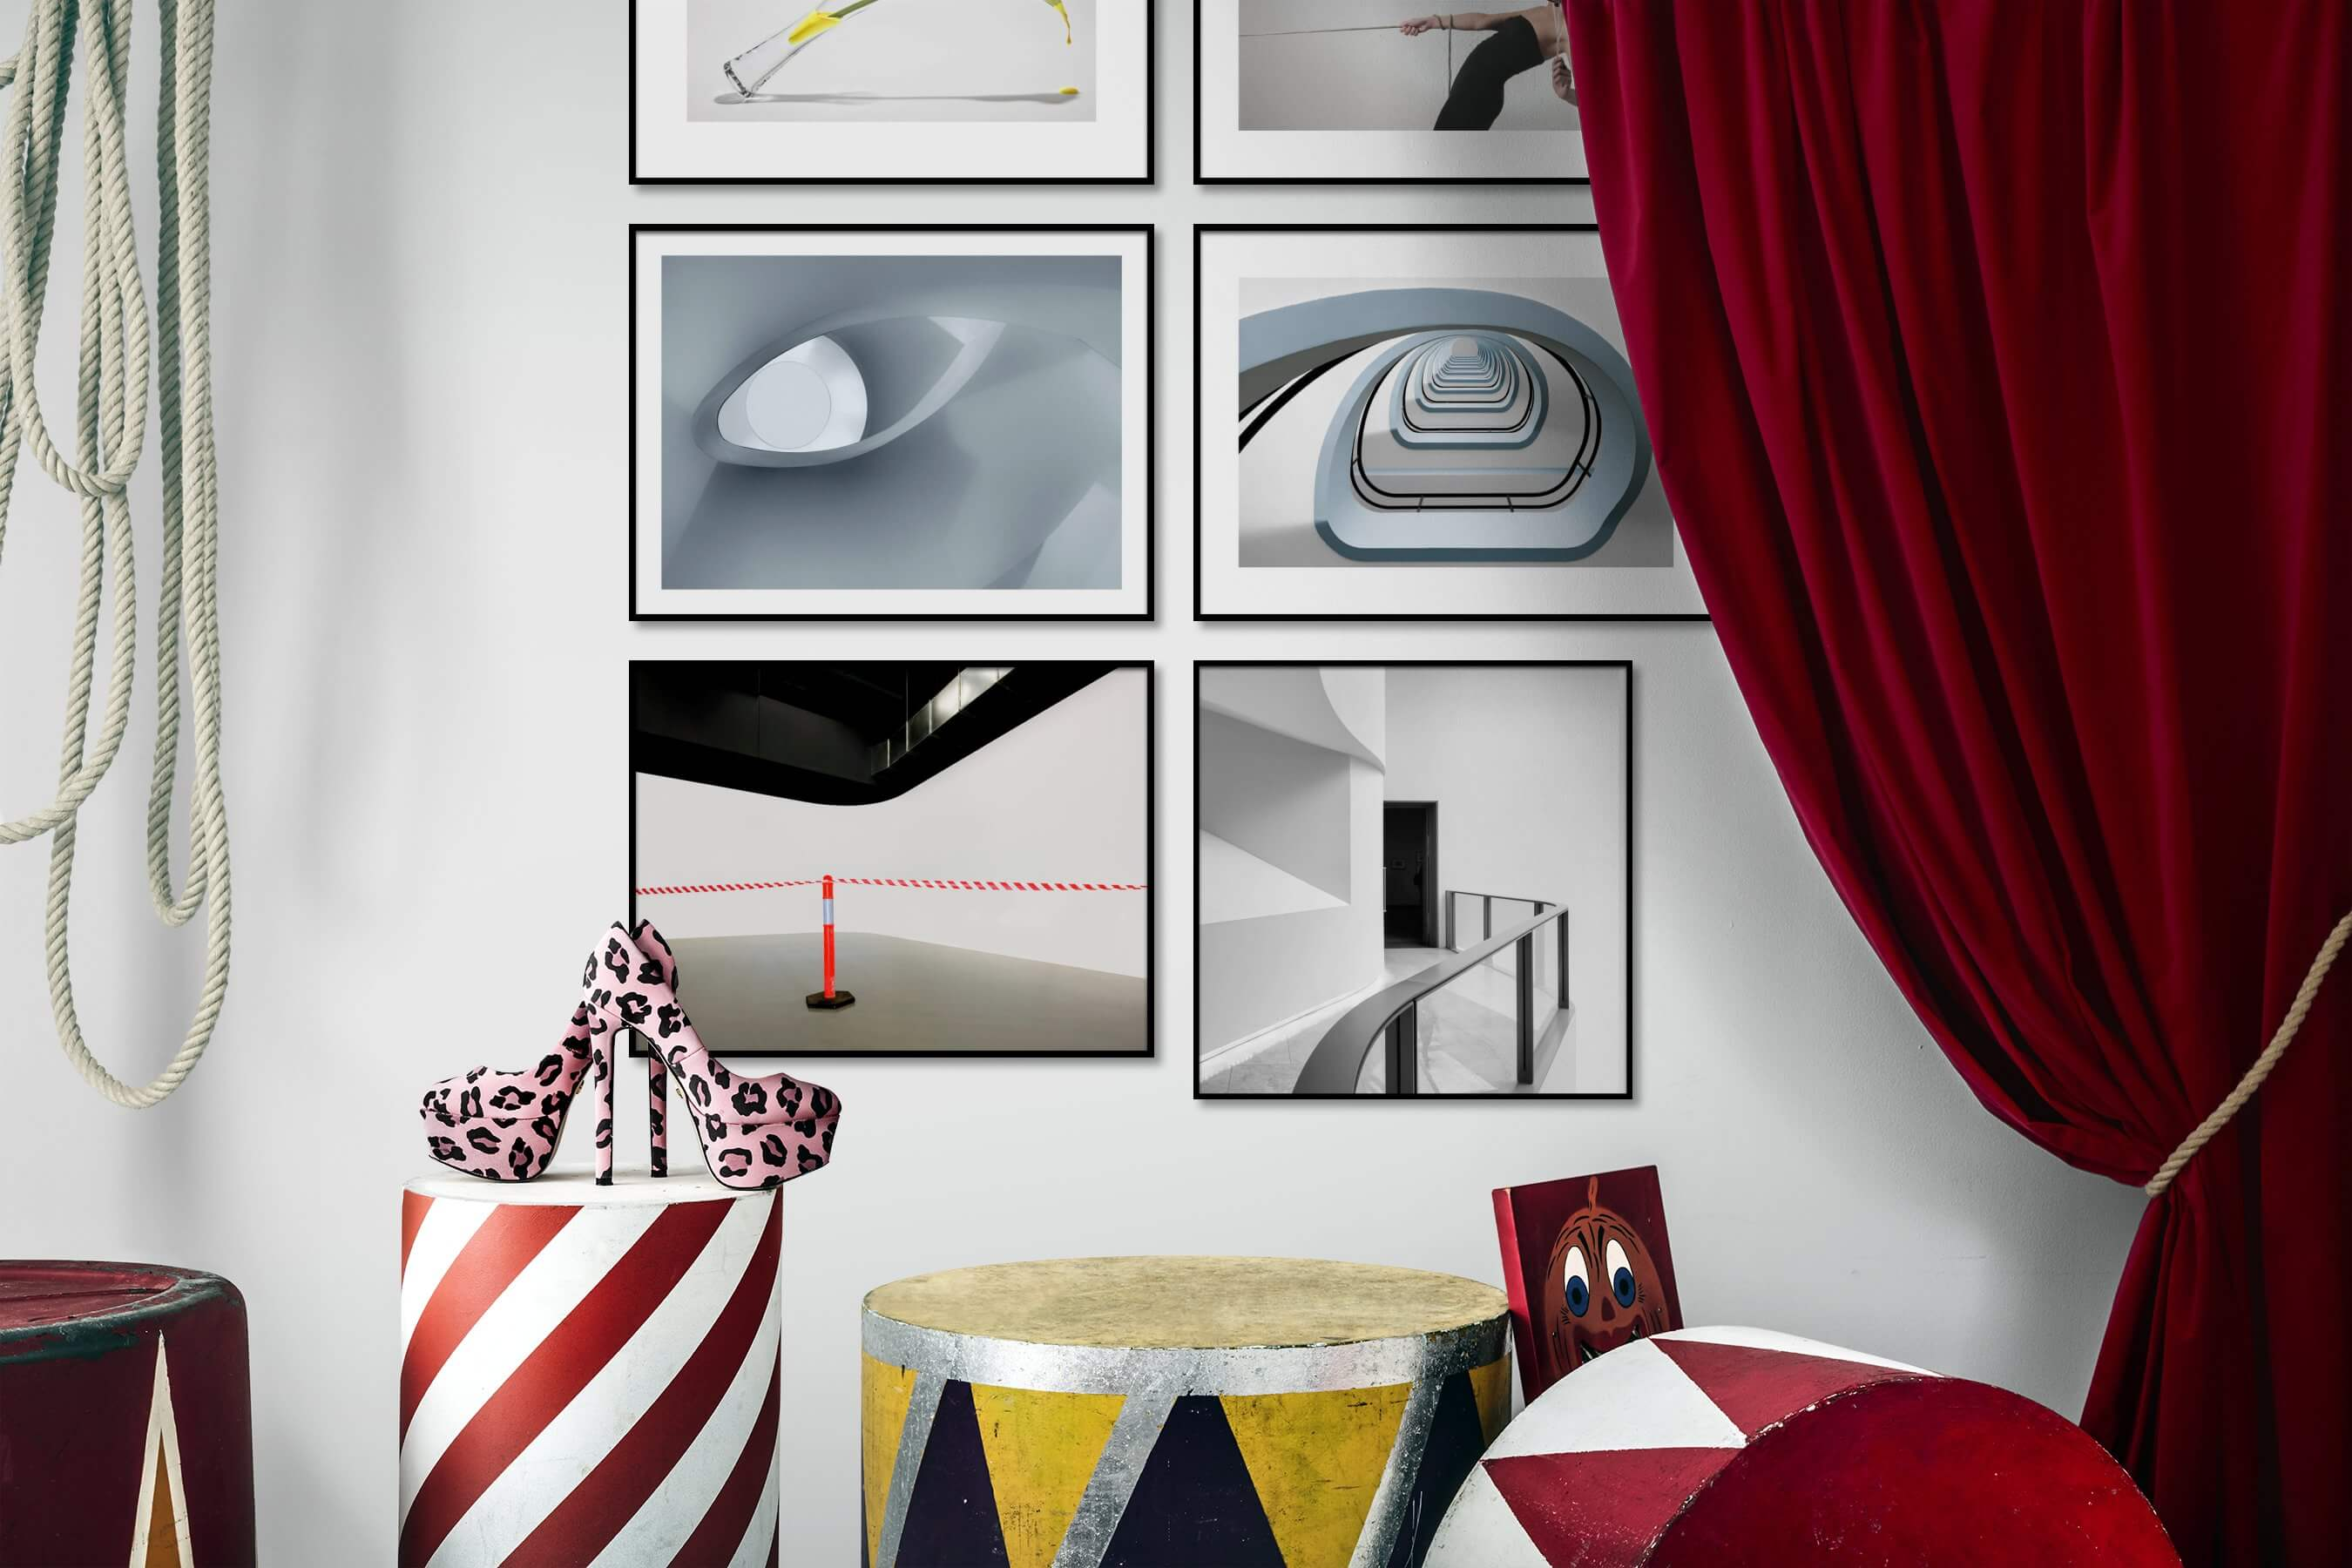 Gallery wall idea with six framed pictures arranged on a wall depicting For the Minimalist, Flowers & Plants, Fashion & Beauty, For the Moderate, and Black & White